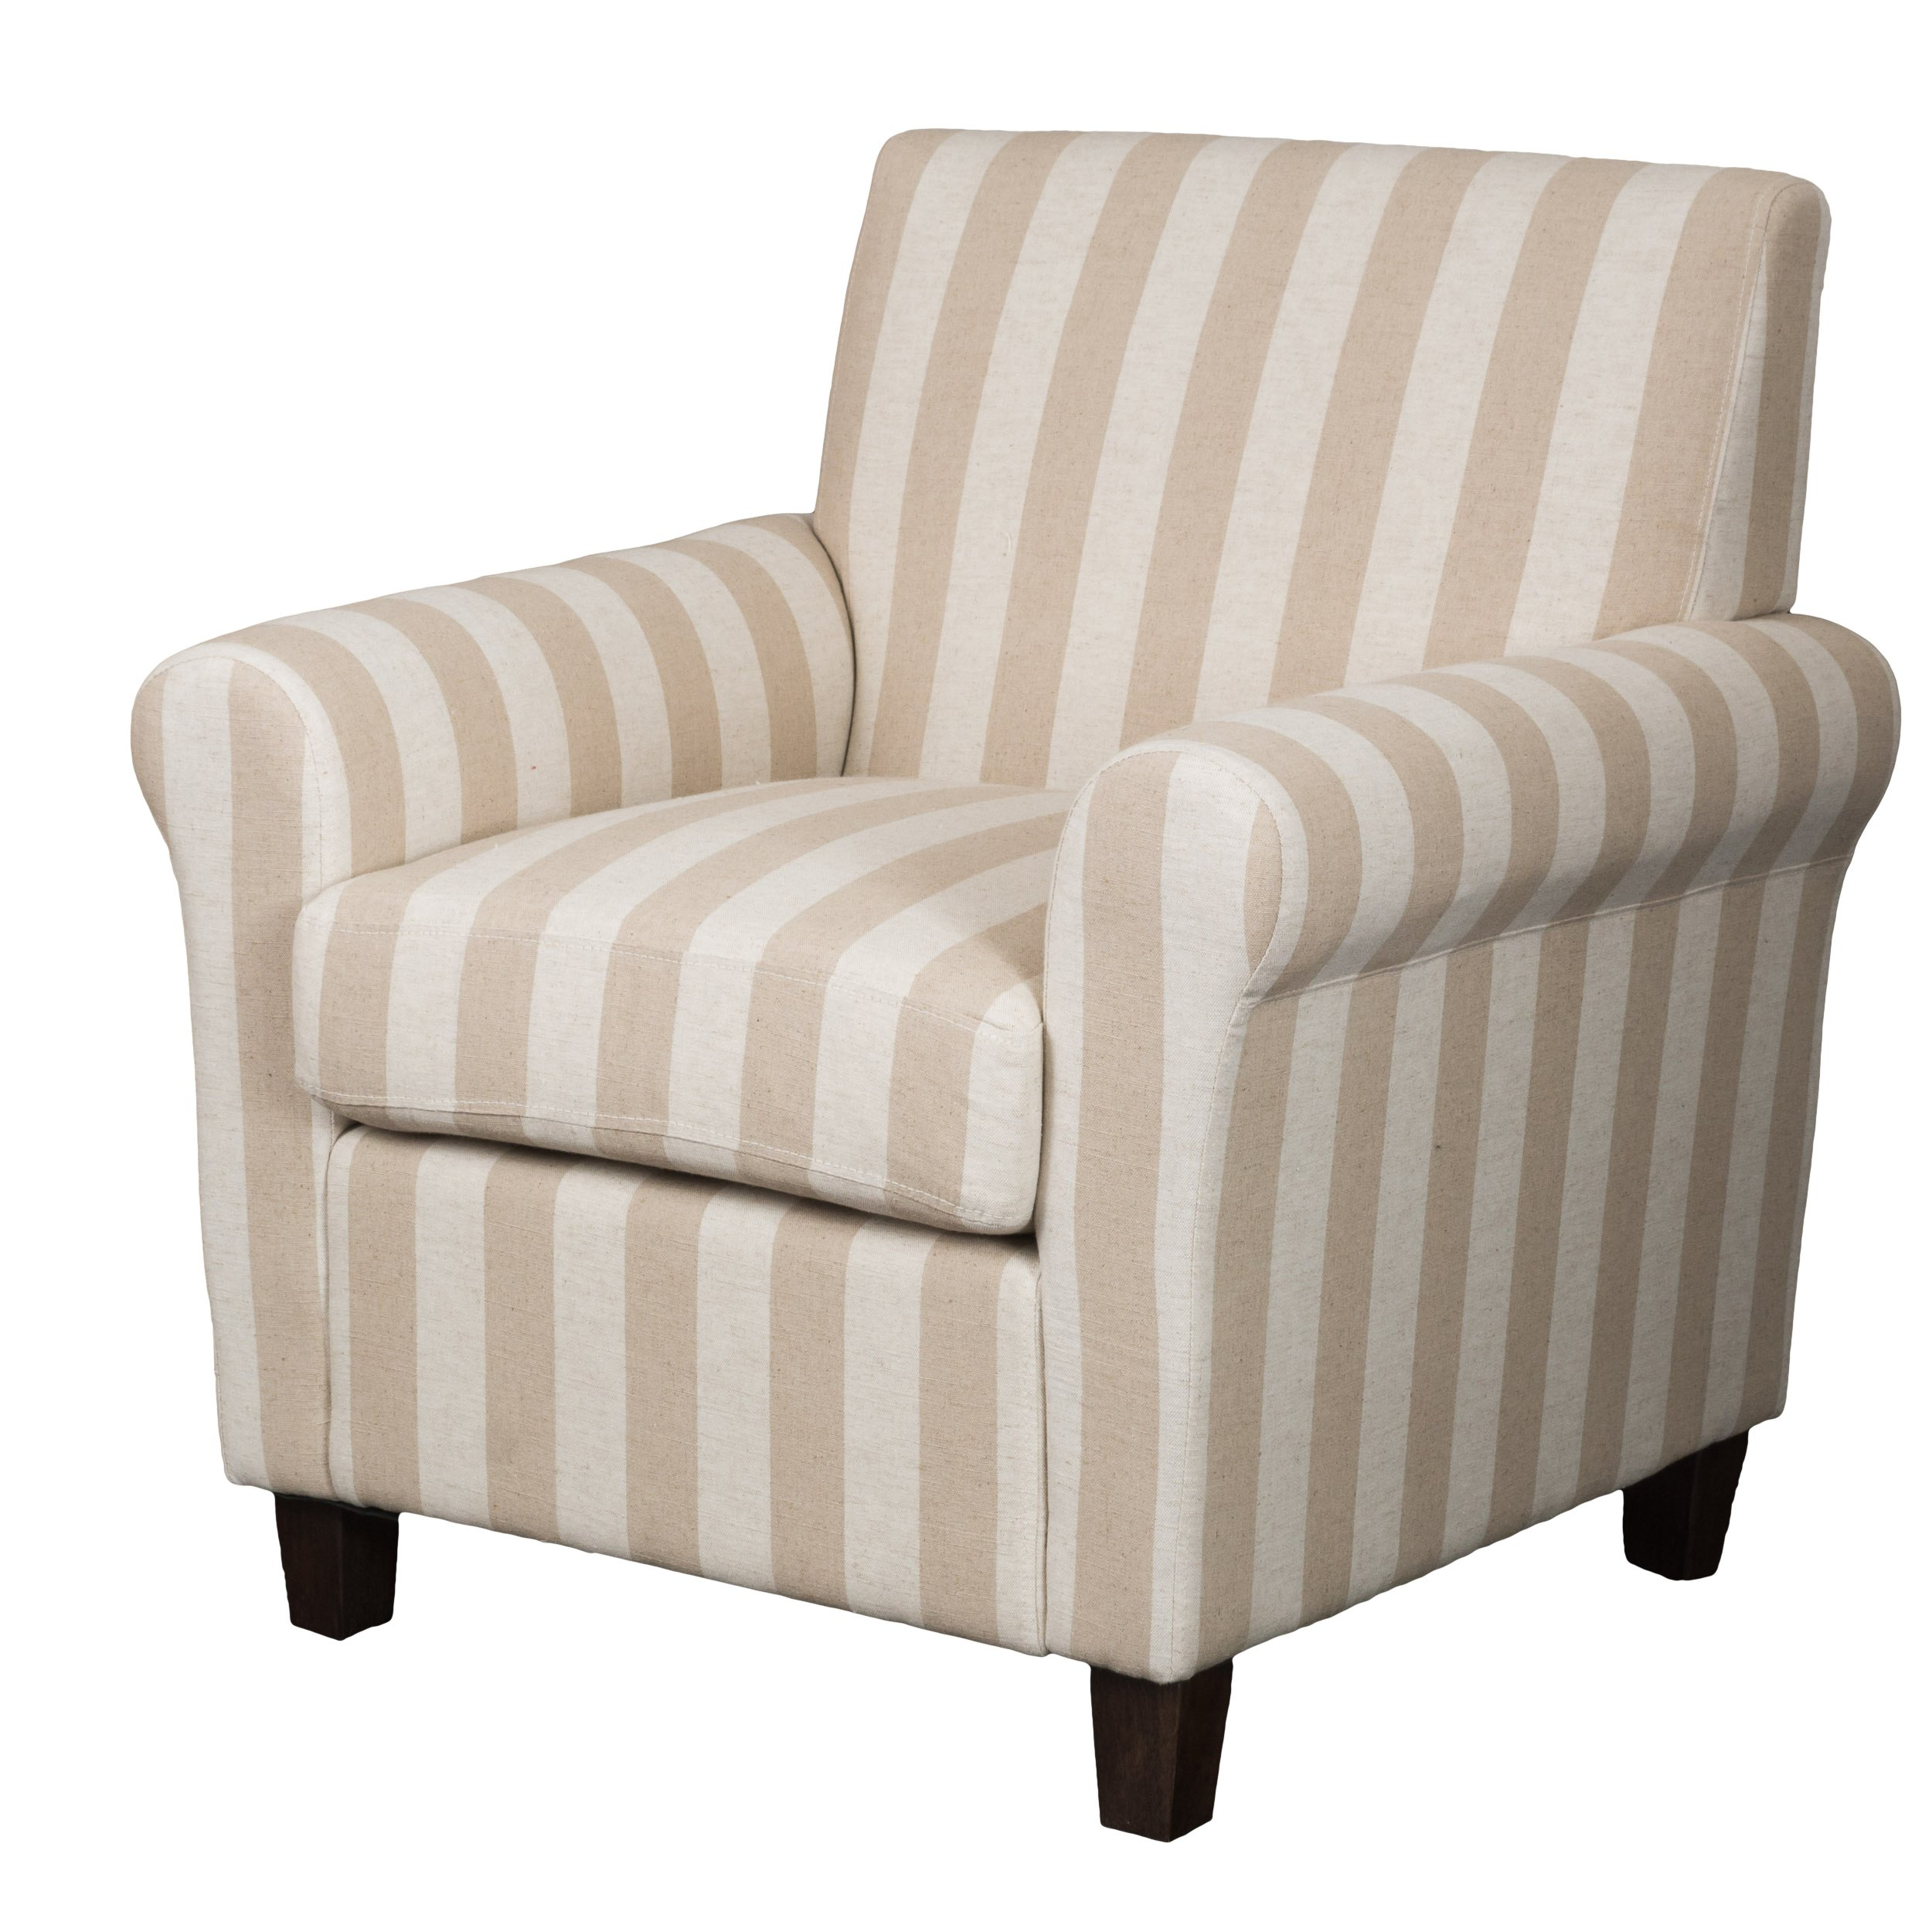 Christopher Knight Home 296299 Brunswick Stripe Fabric Club Chair, Cotton Linen by Christopher Knight Home